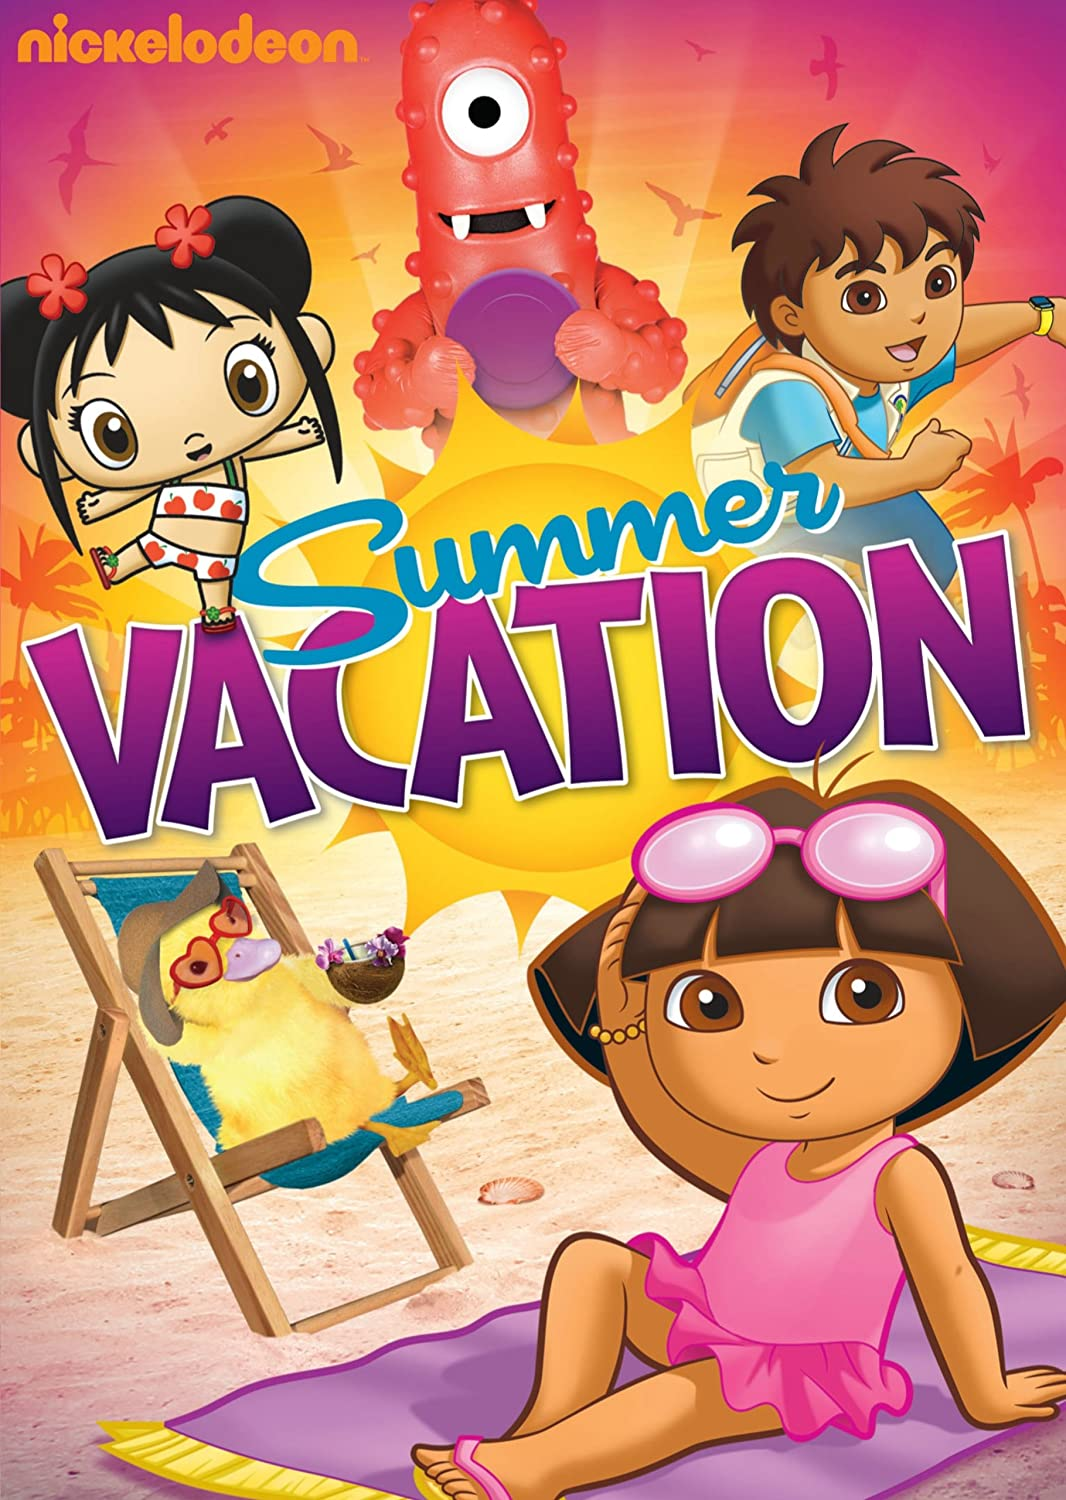 http://www.amazon.com/Nickelodeon-Favorites-Summer-Vacation/dp/B004V2S4I8/